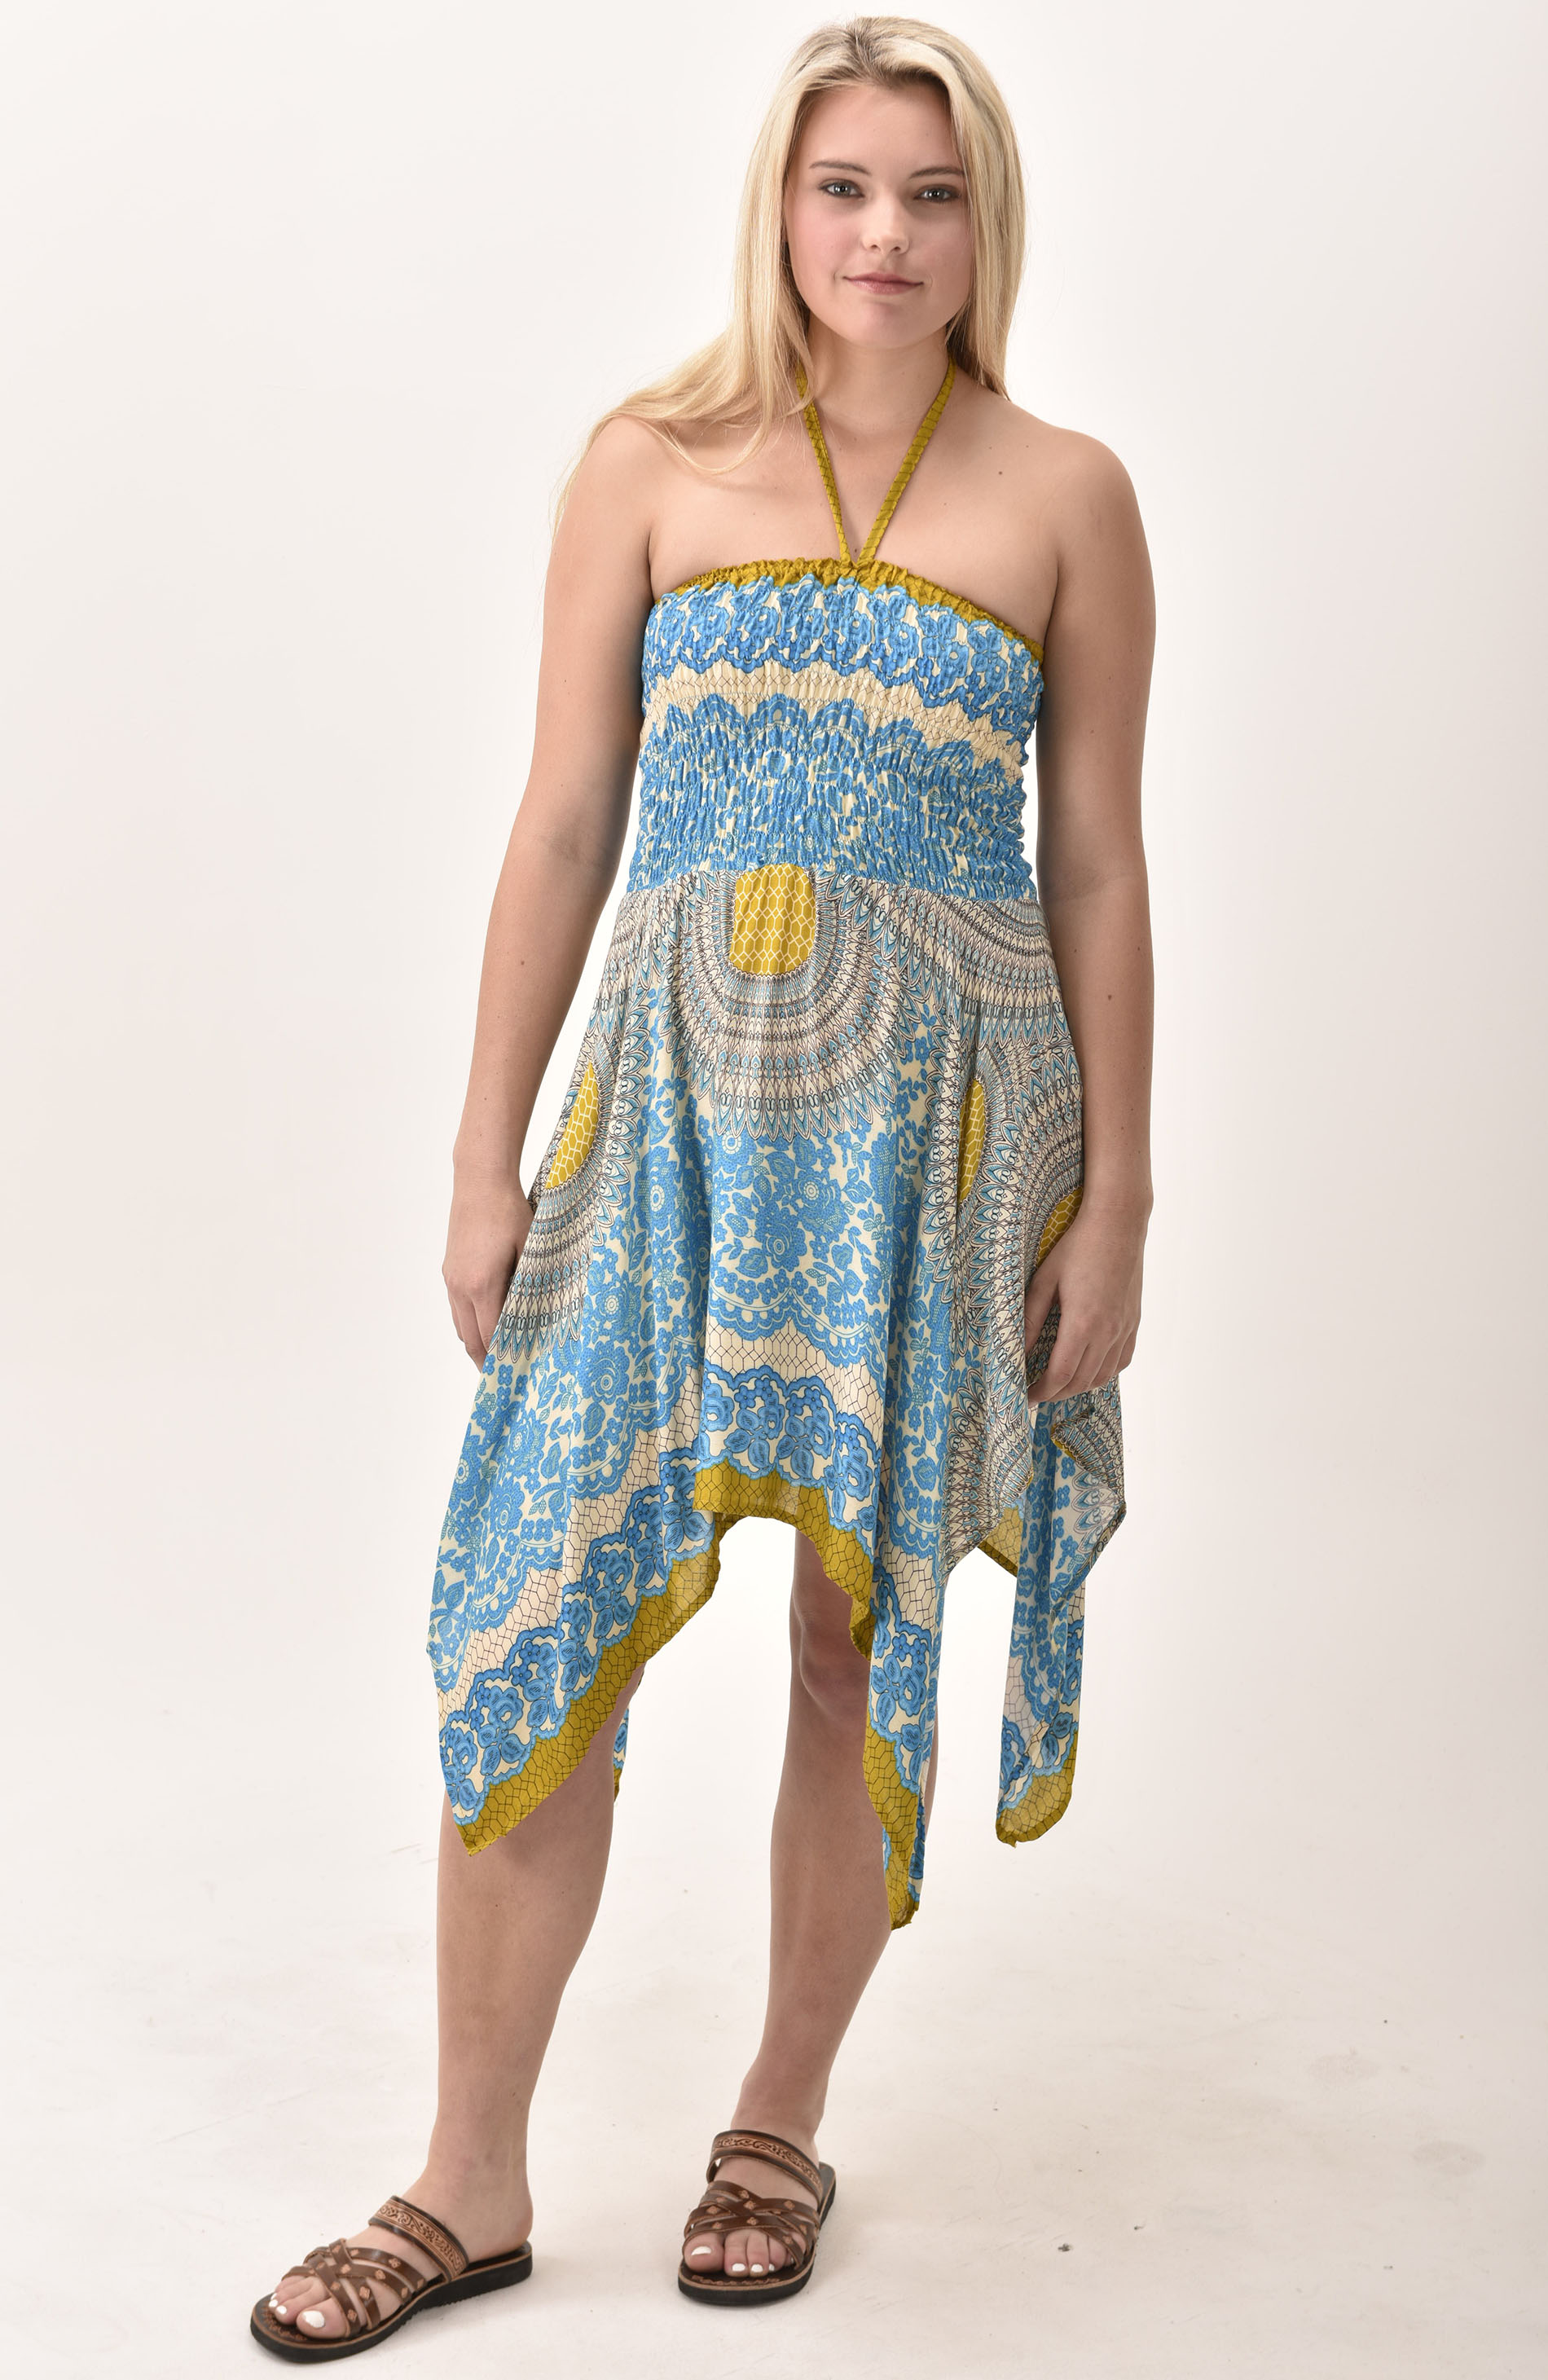 Honeycomb Print Rayon Fairy Dress / Skirt Teal